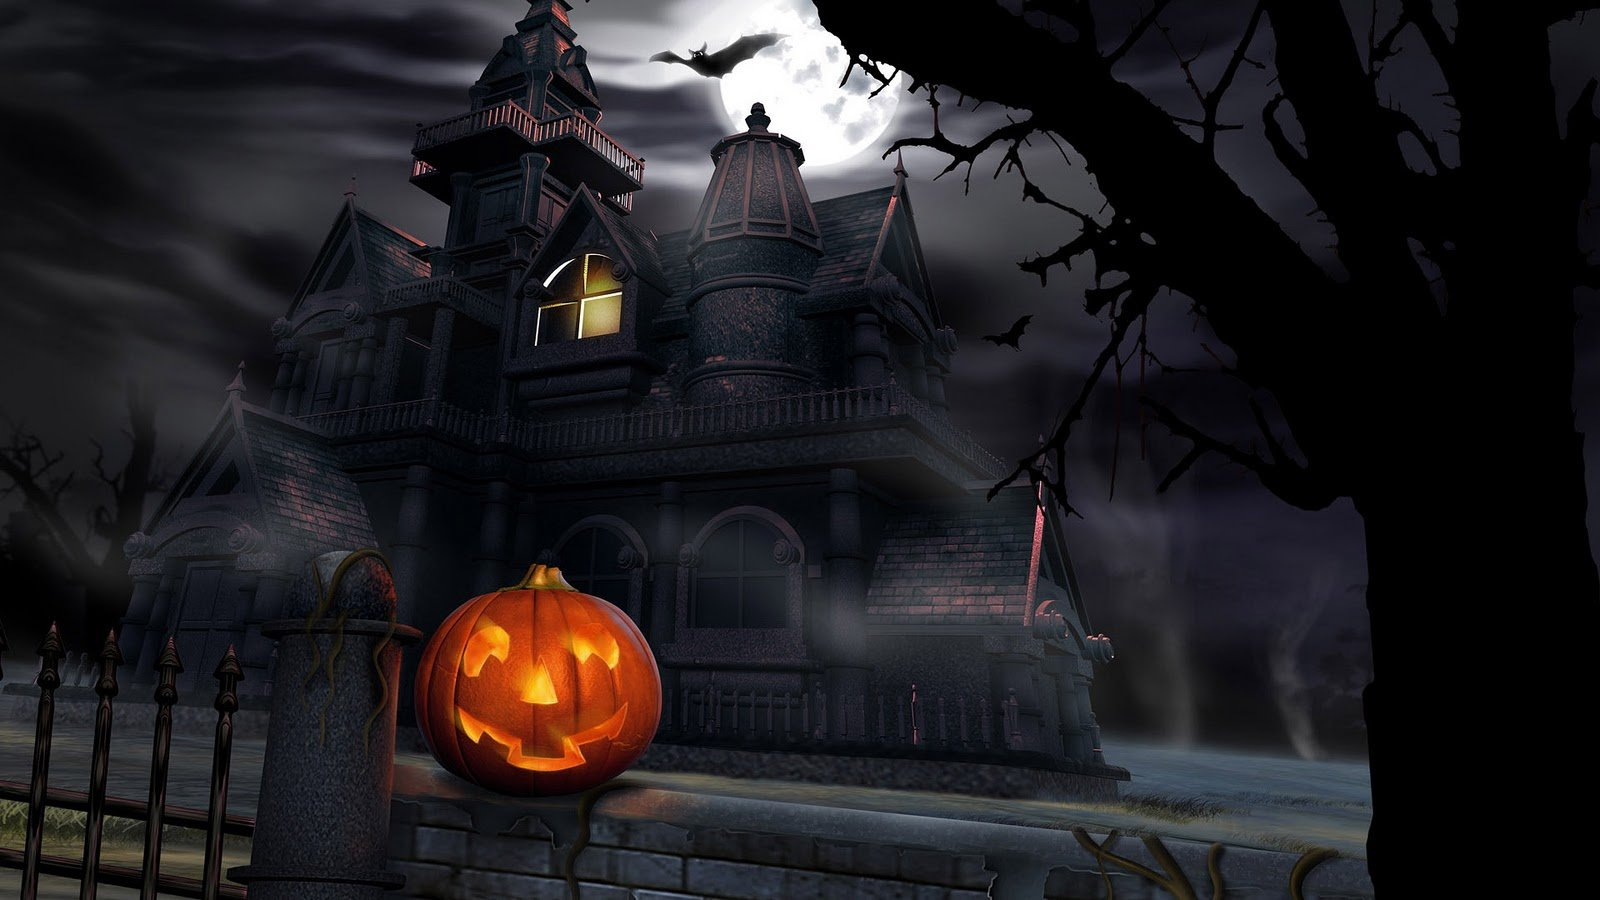 Halloween Scary Animated Desktop Wallpaper Mega Wallpapers 1600x900